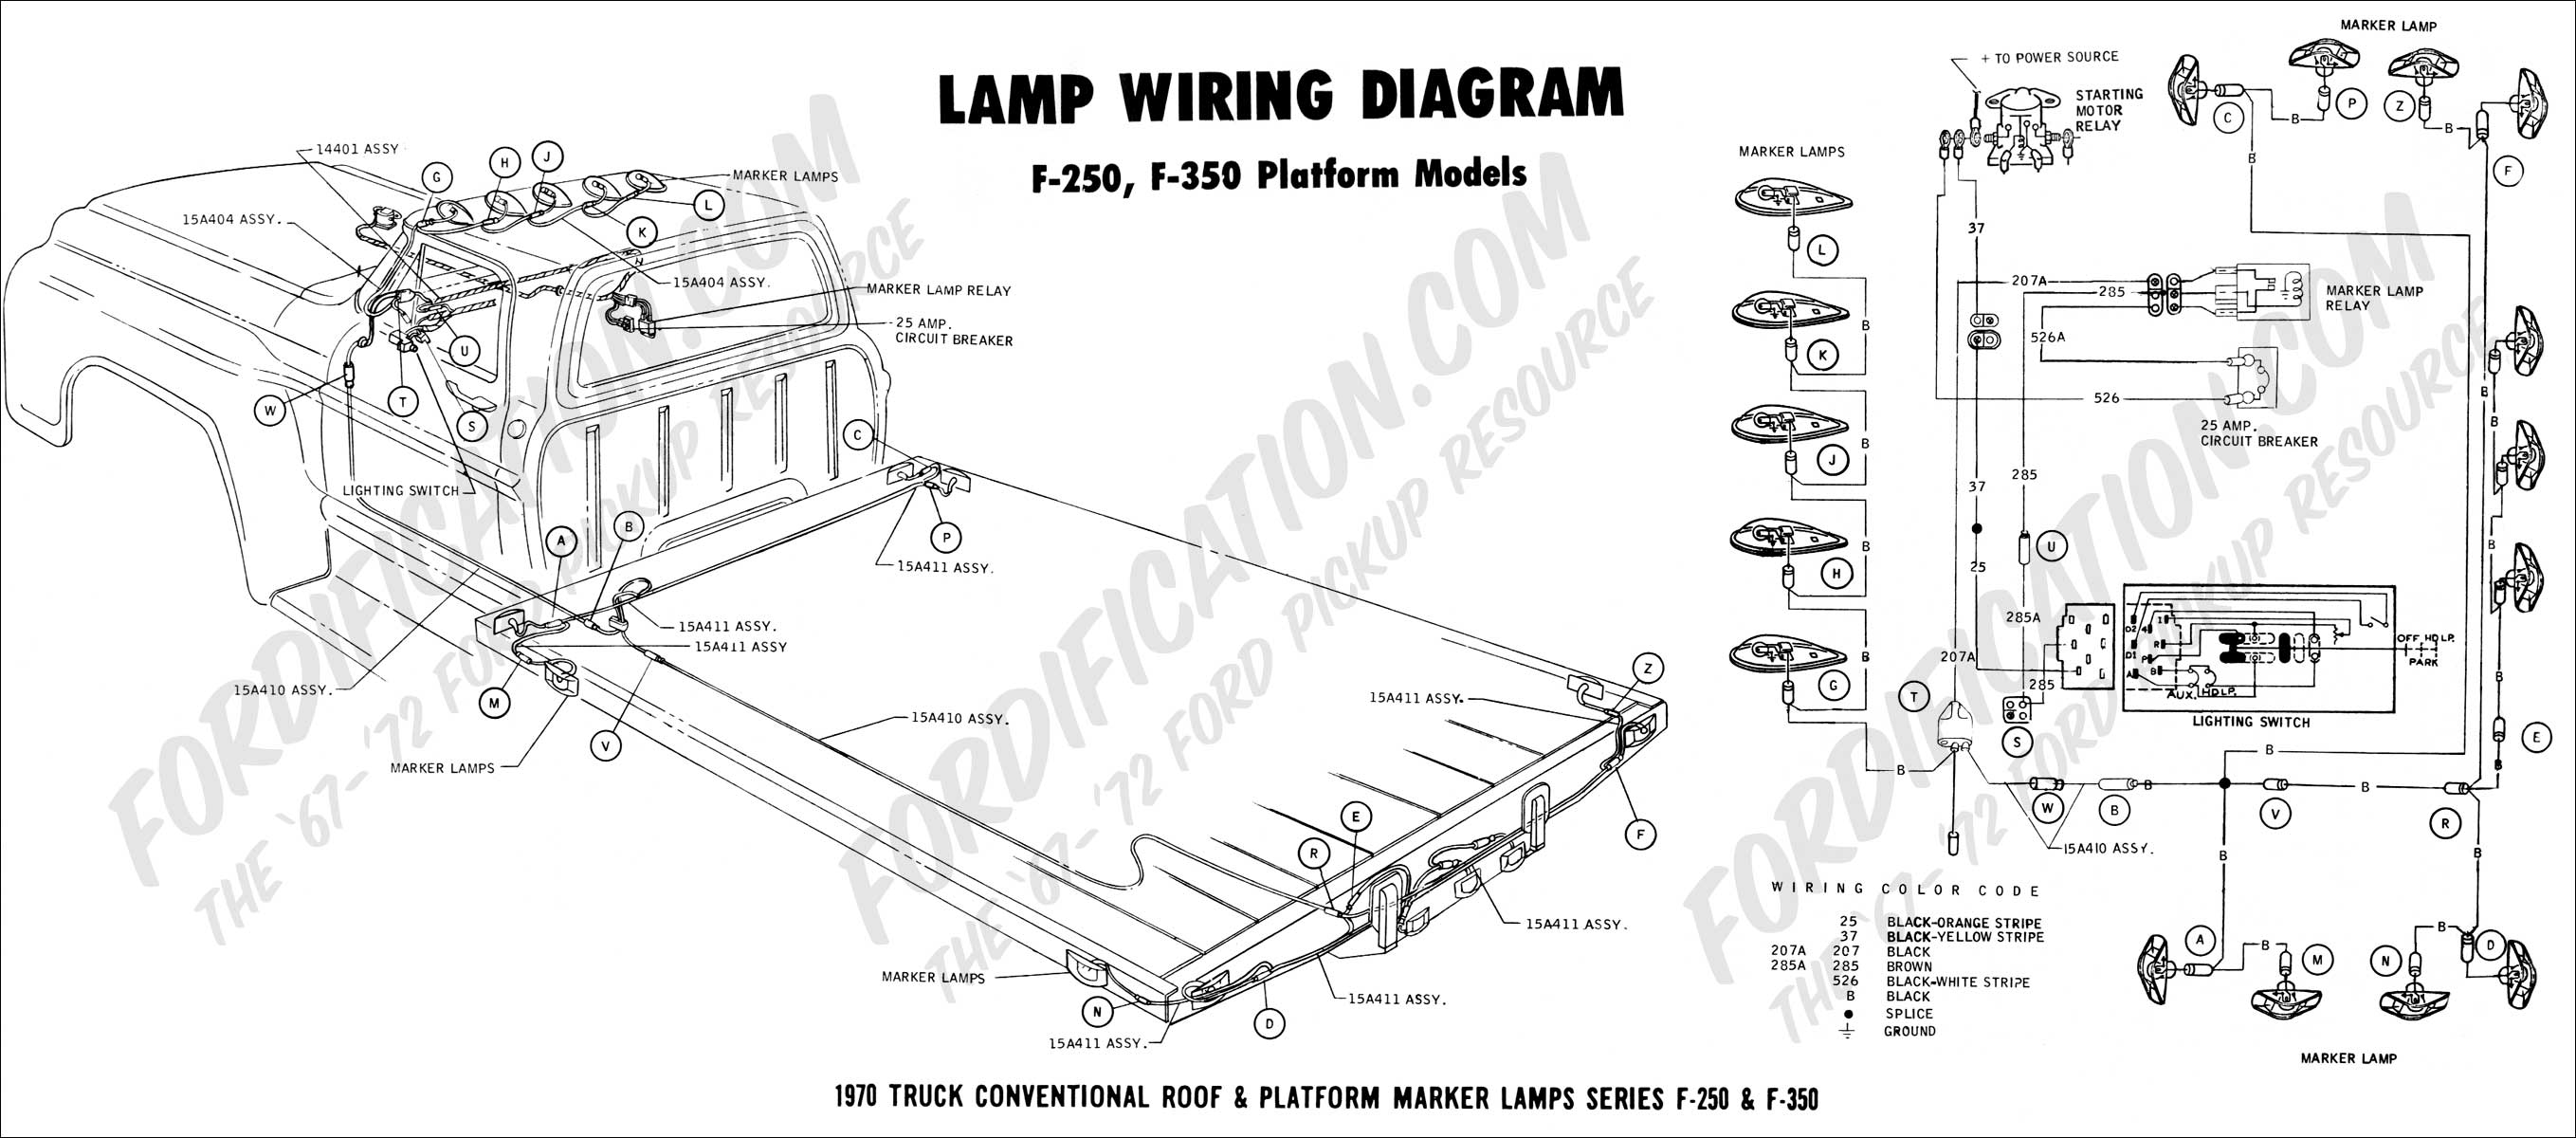 1986 Ford F700 Wiring Diagram 2007 F750 Wiring-Diagram